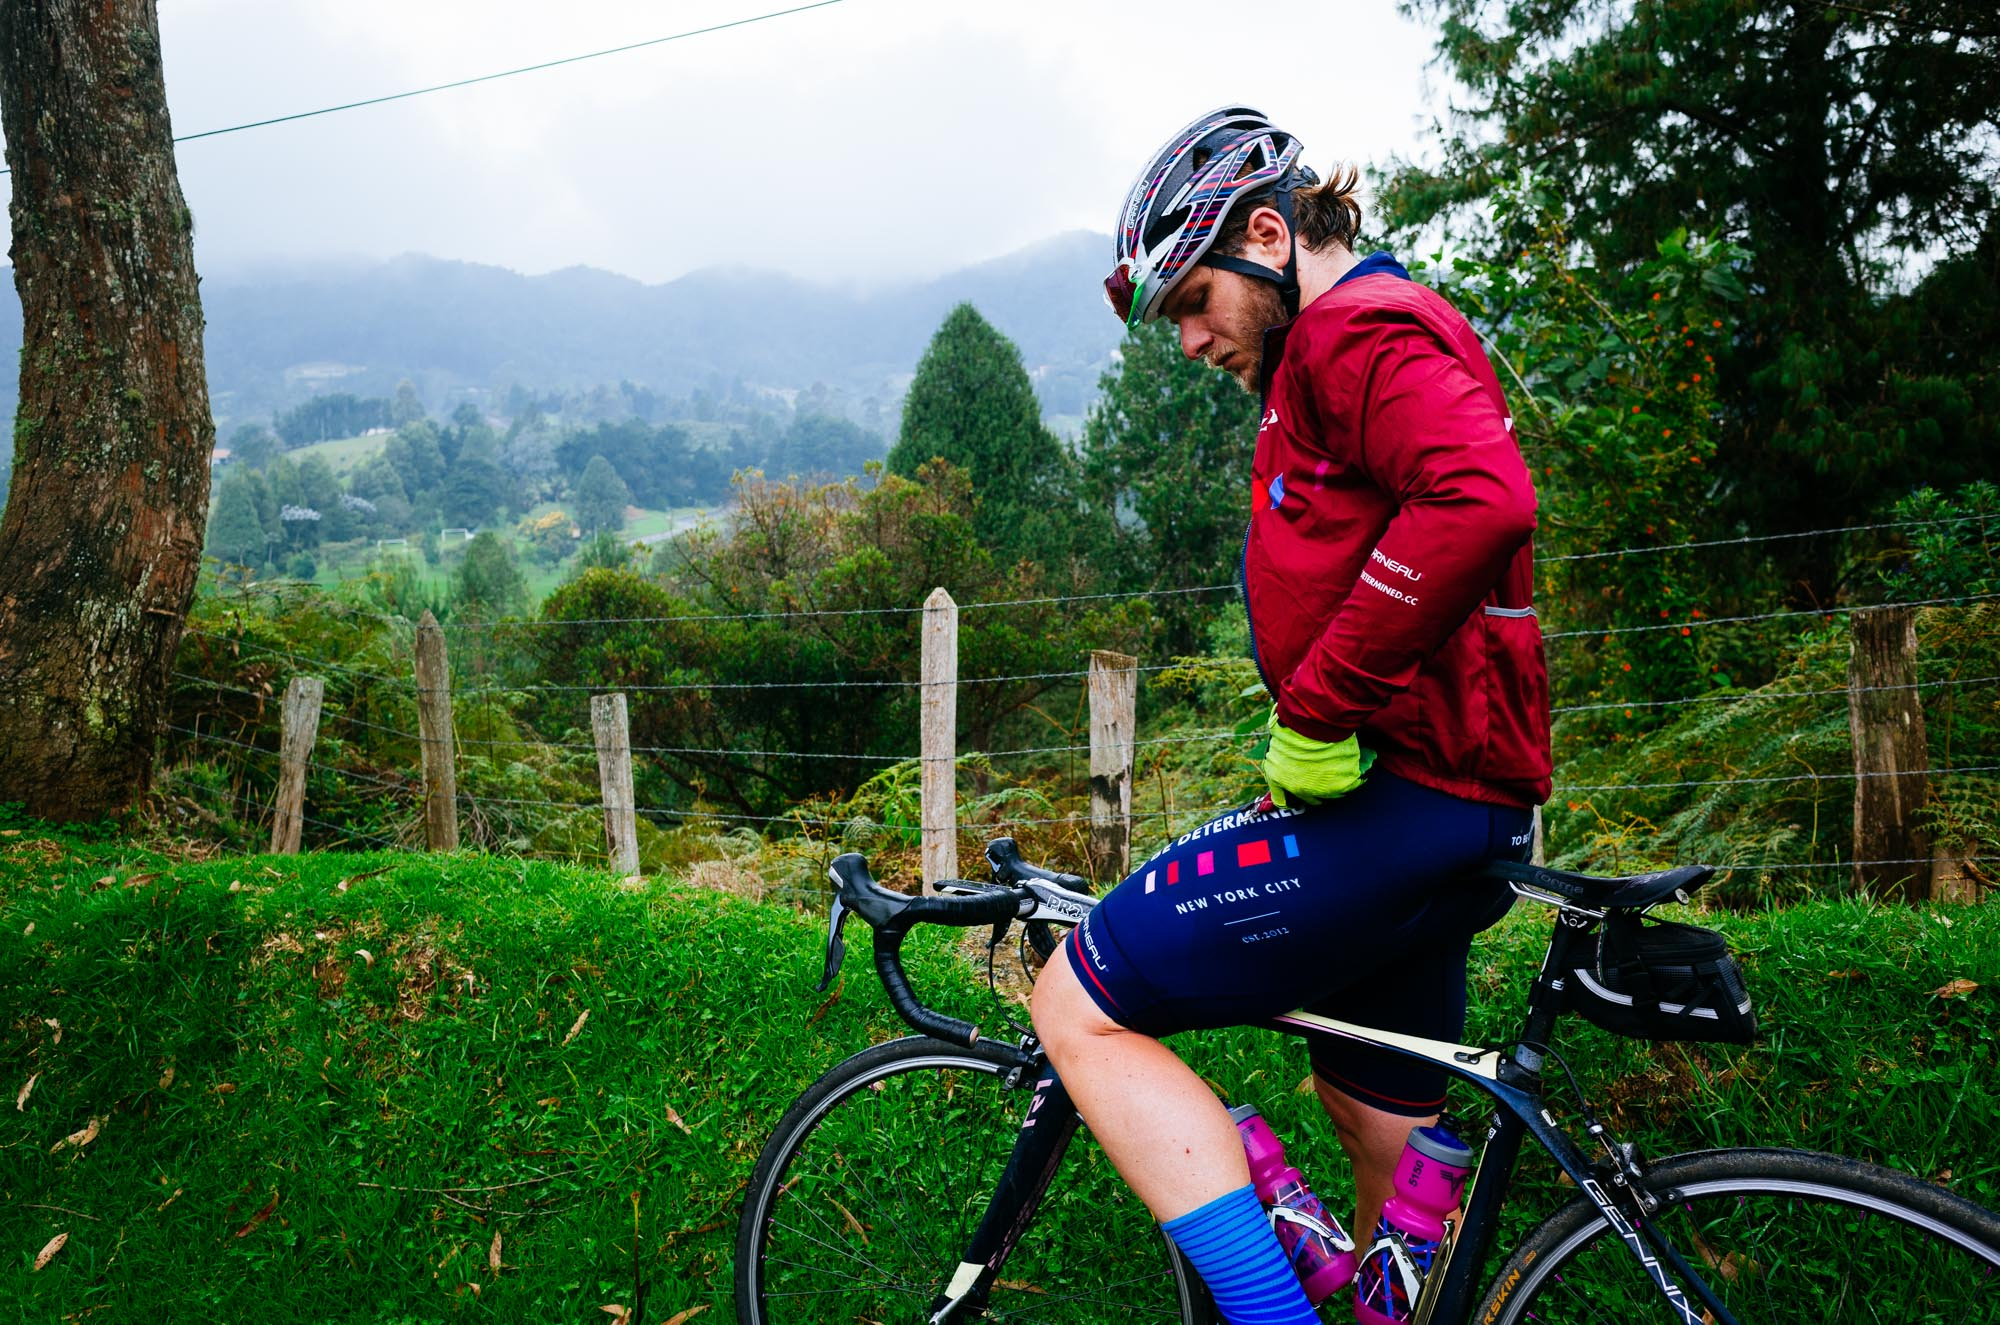 to-be-determined-photo-rhetoric-cycling-in-colombia-1077.jpg